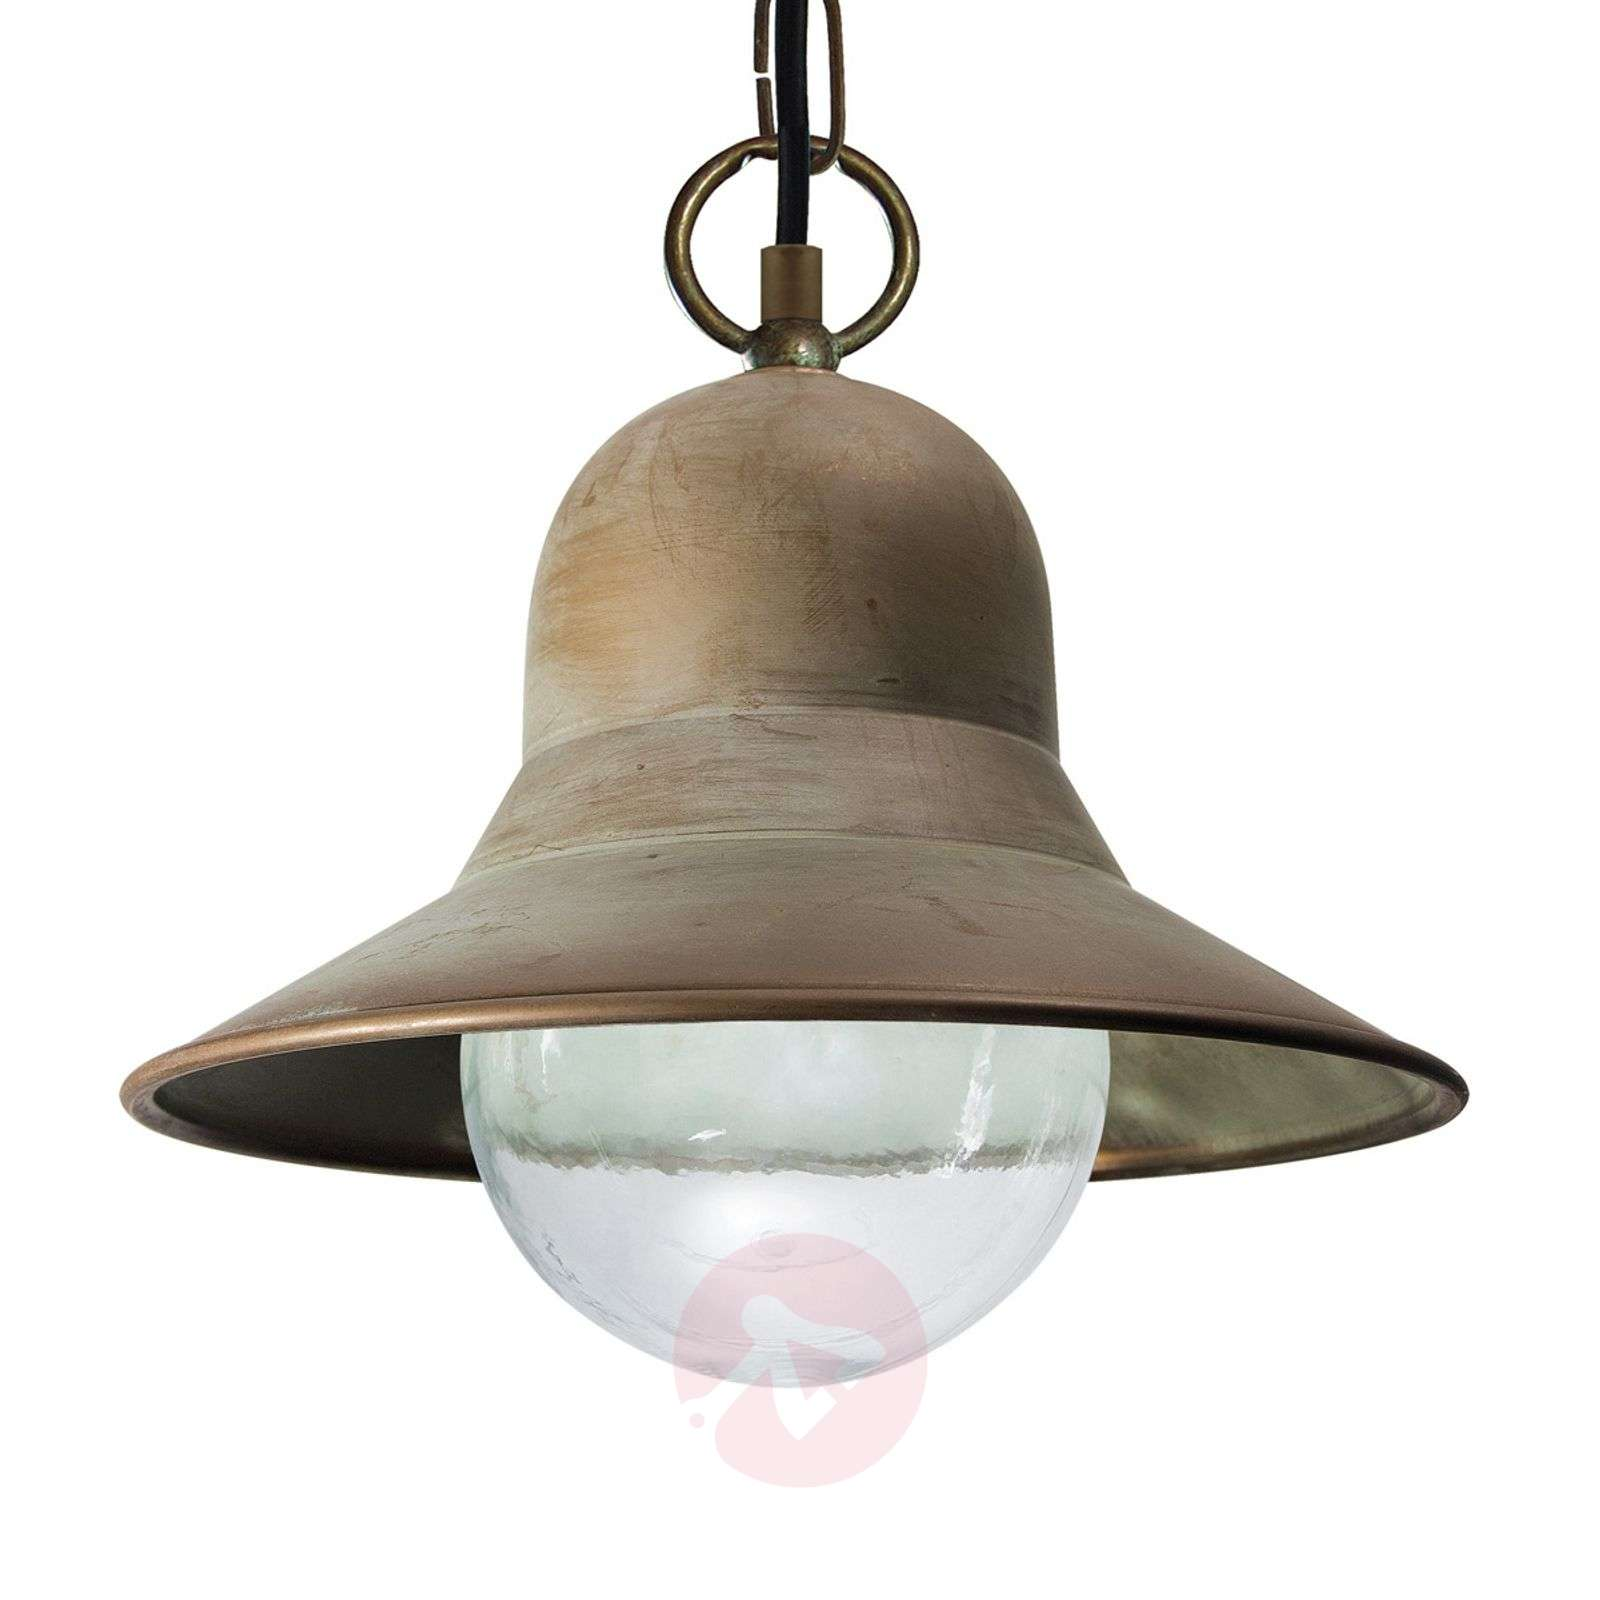 Seawater-resistant outdoor hanging light Marquesa-6515262-01